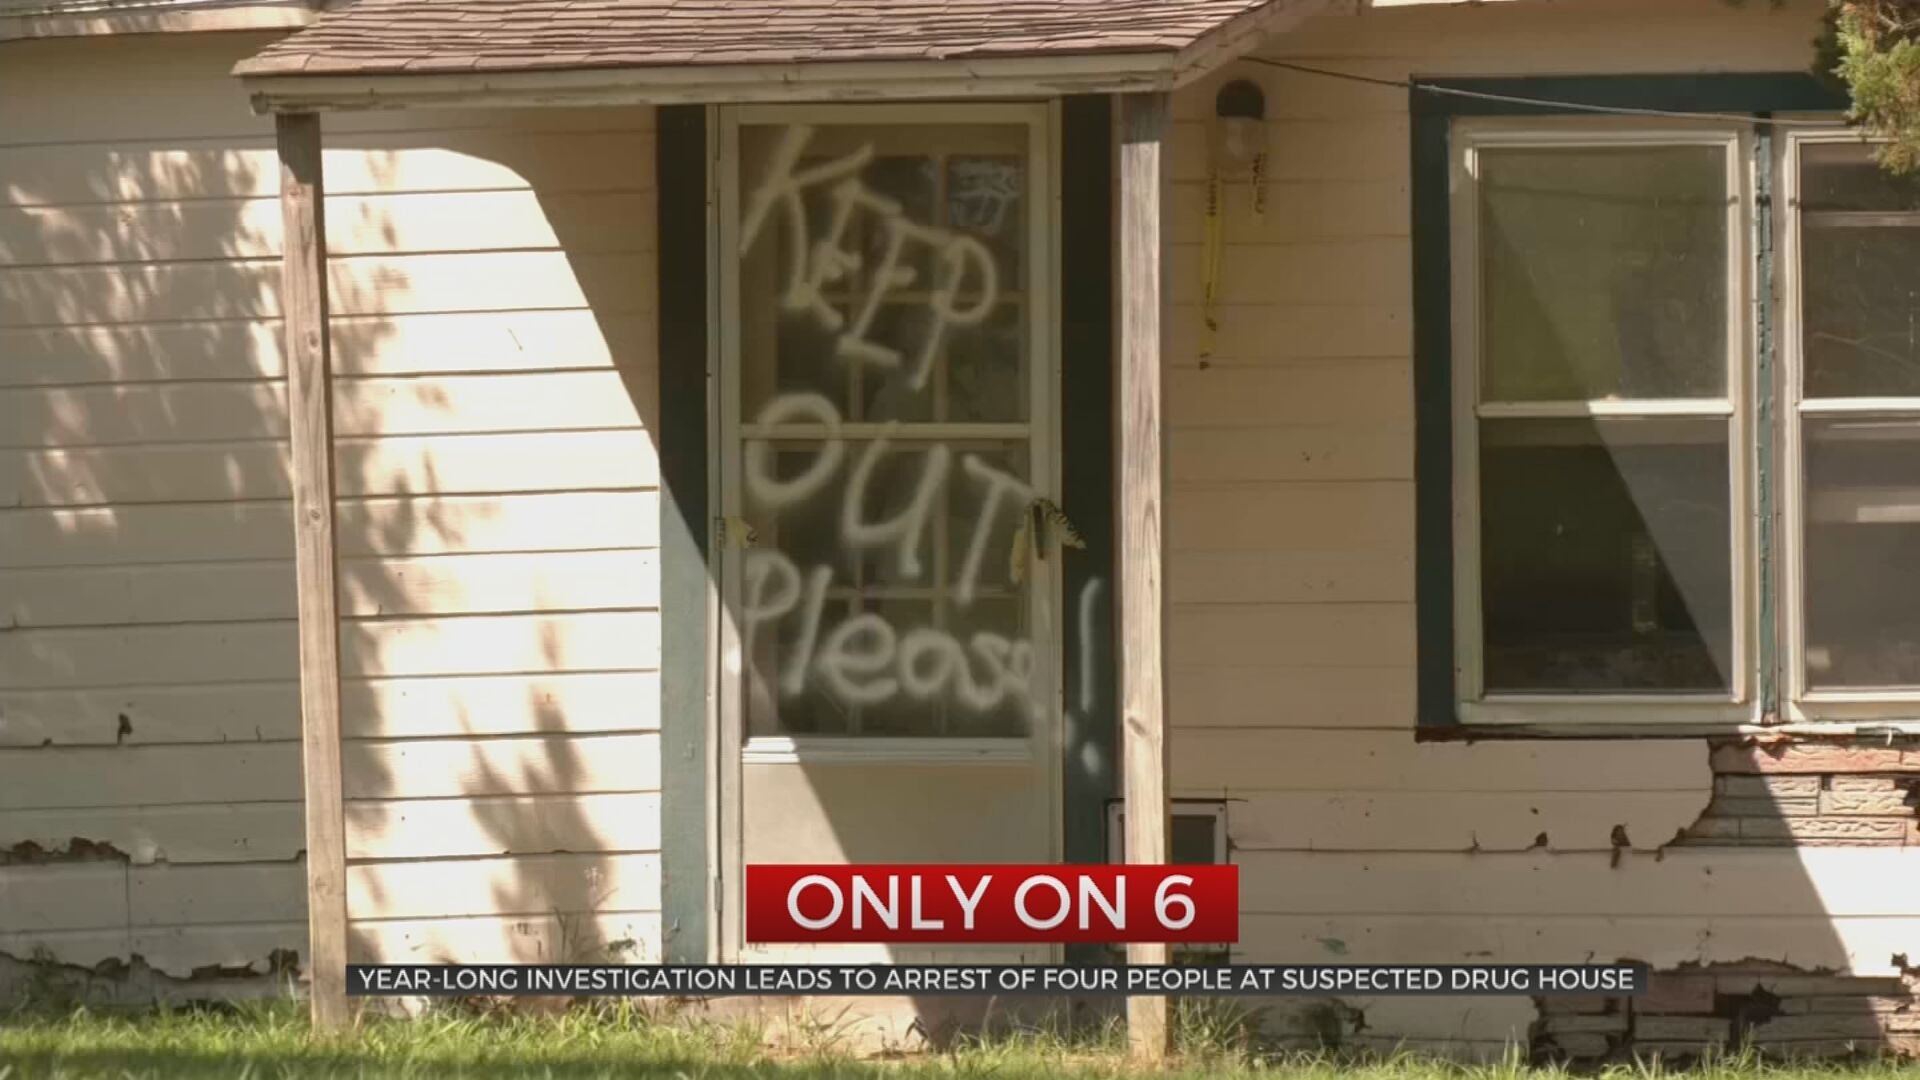 Year-Long Investigation Leads To Arrest Of 4 People At Suspected Drug House